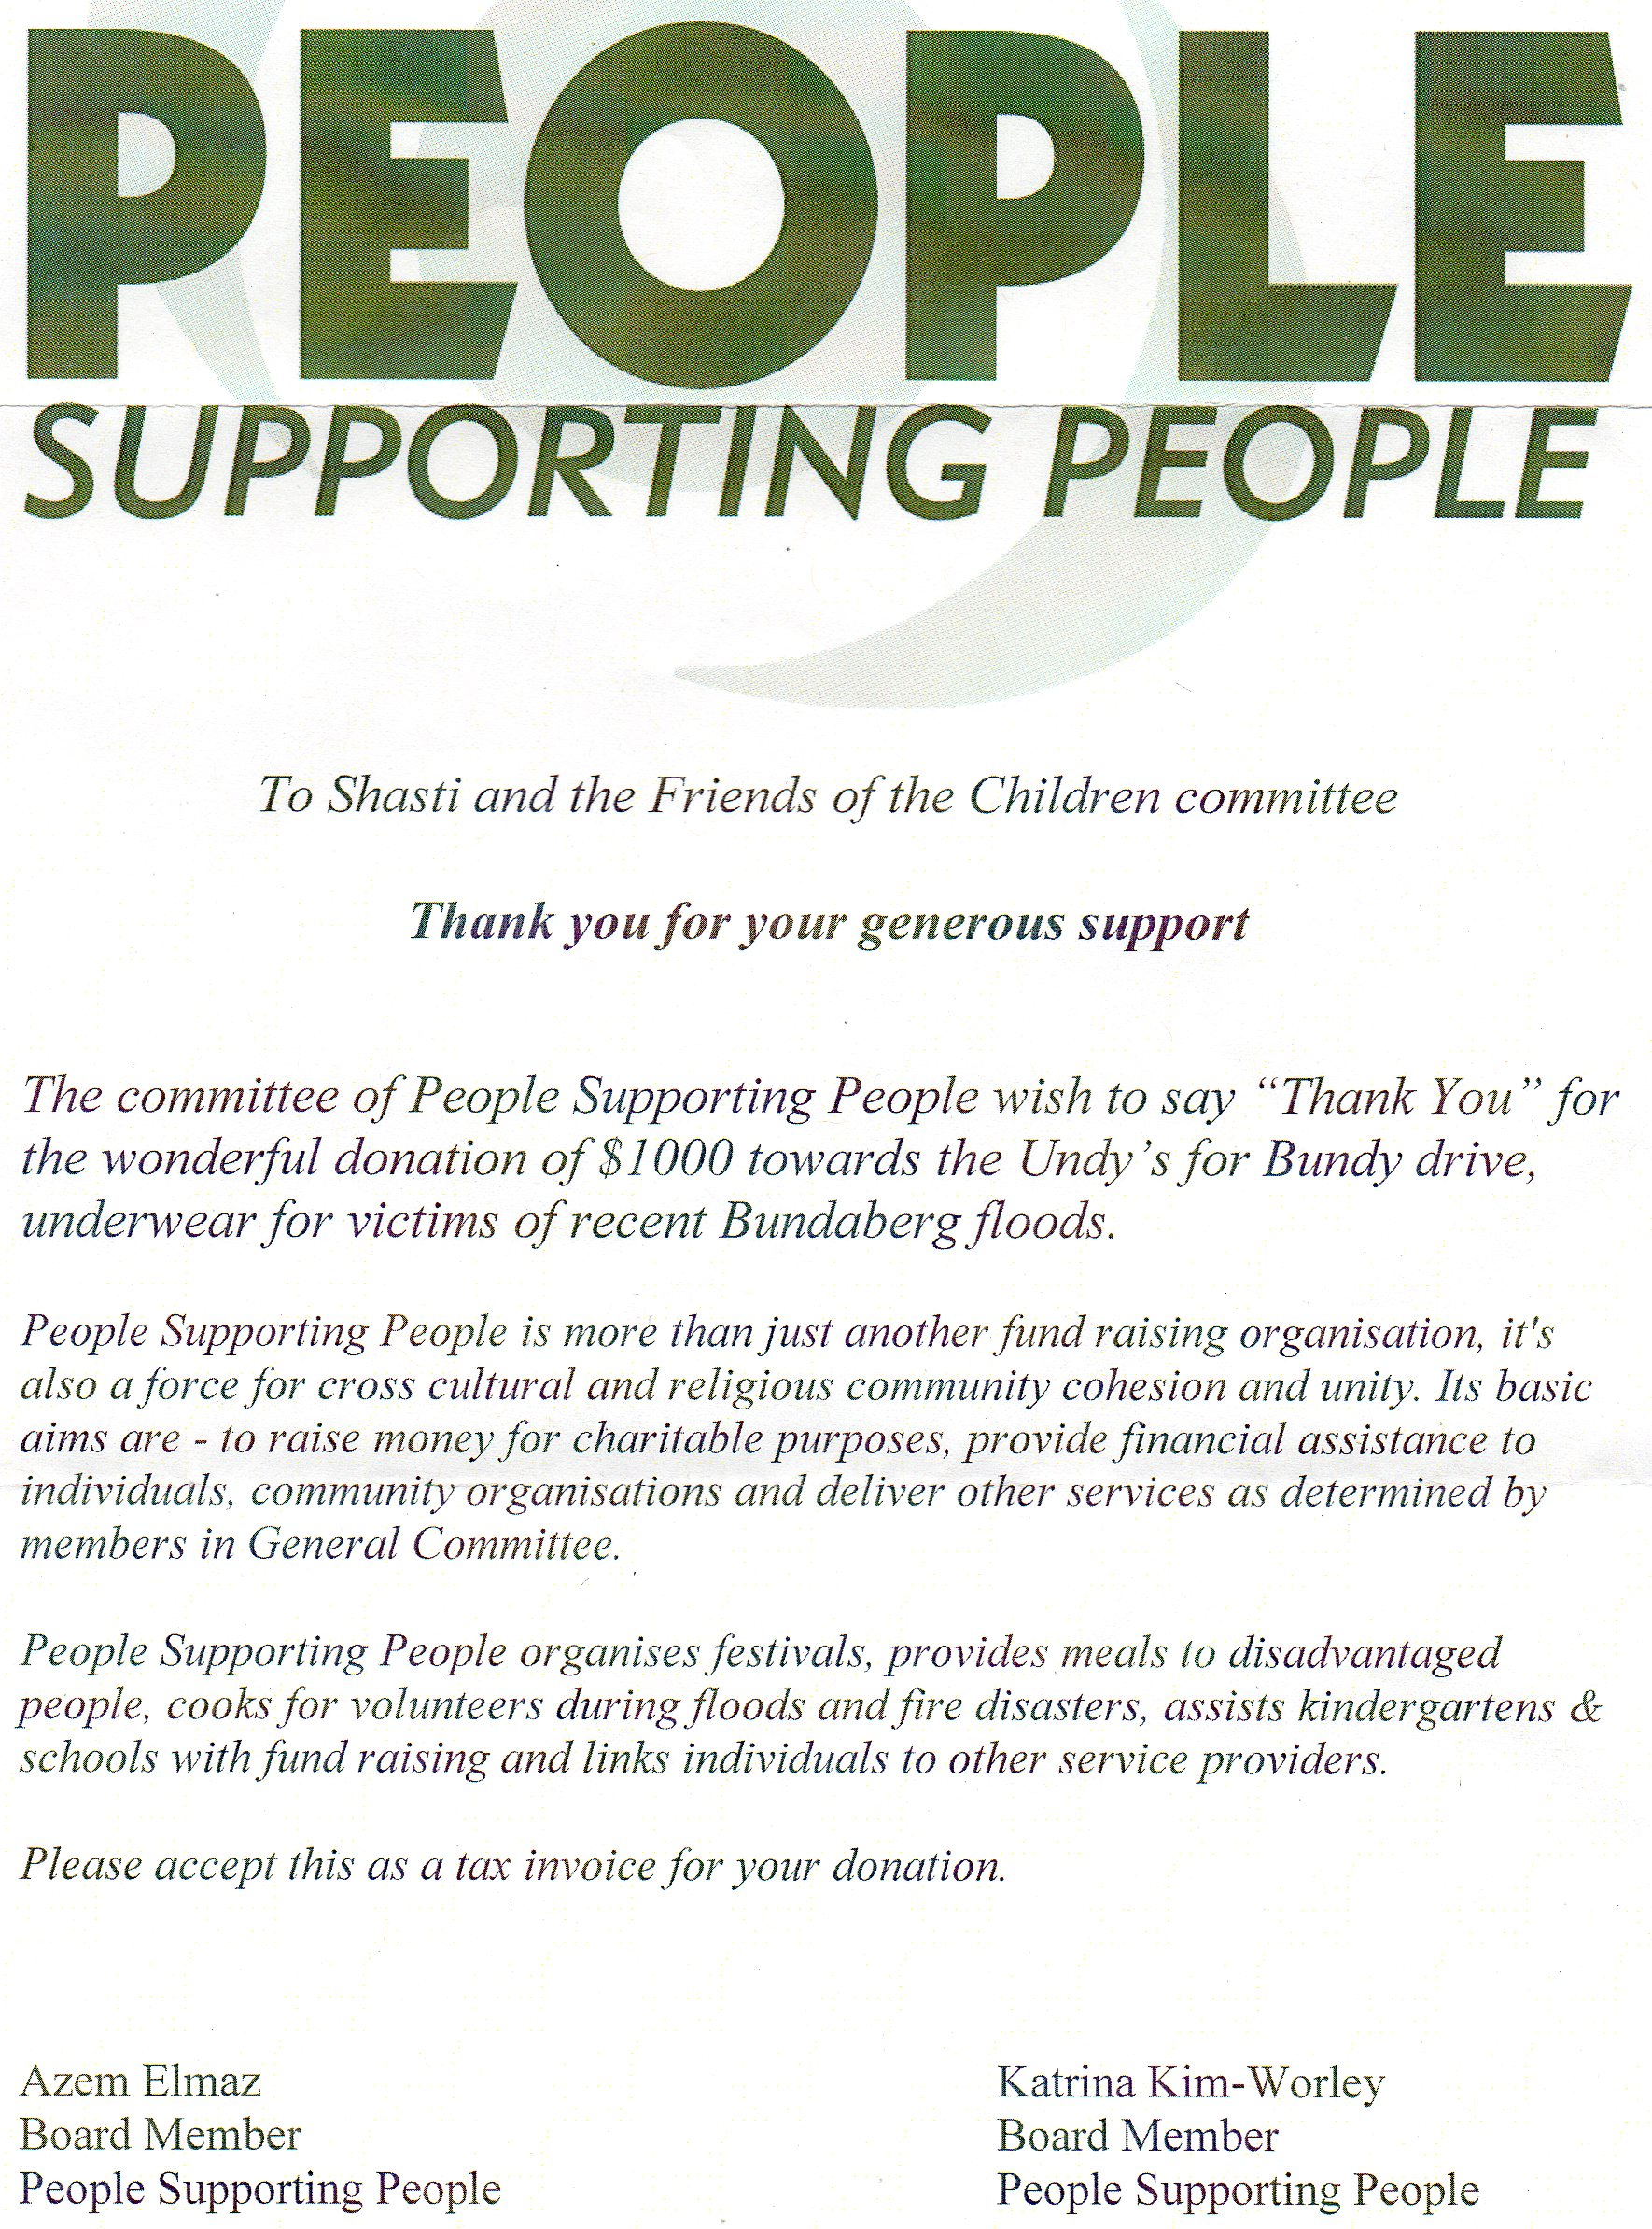 Thank You Letter From People Supporting People Friends Of The